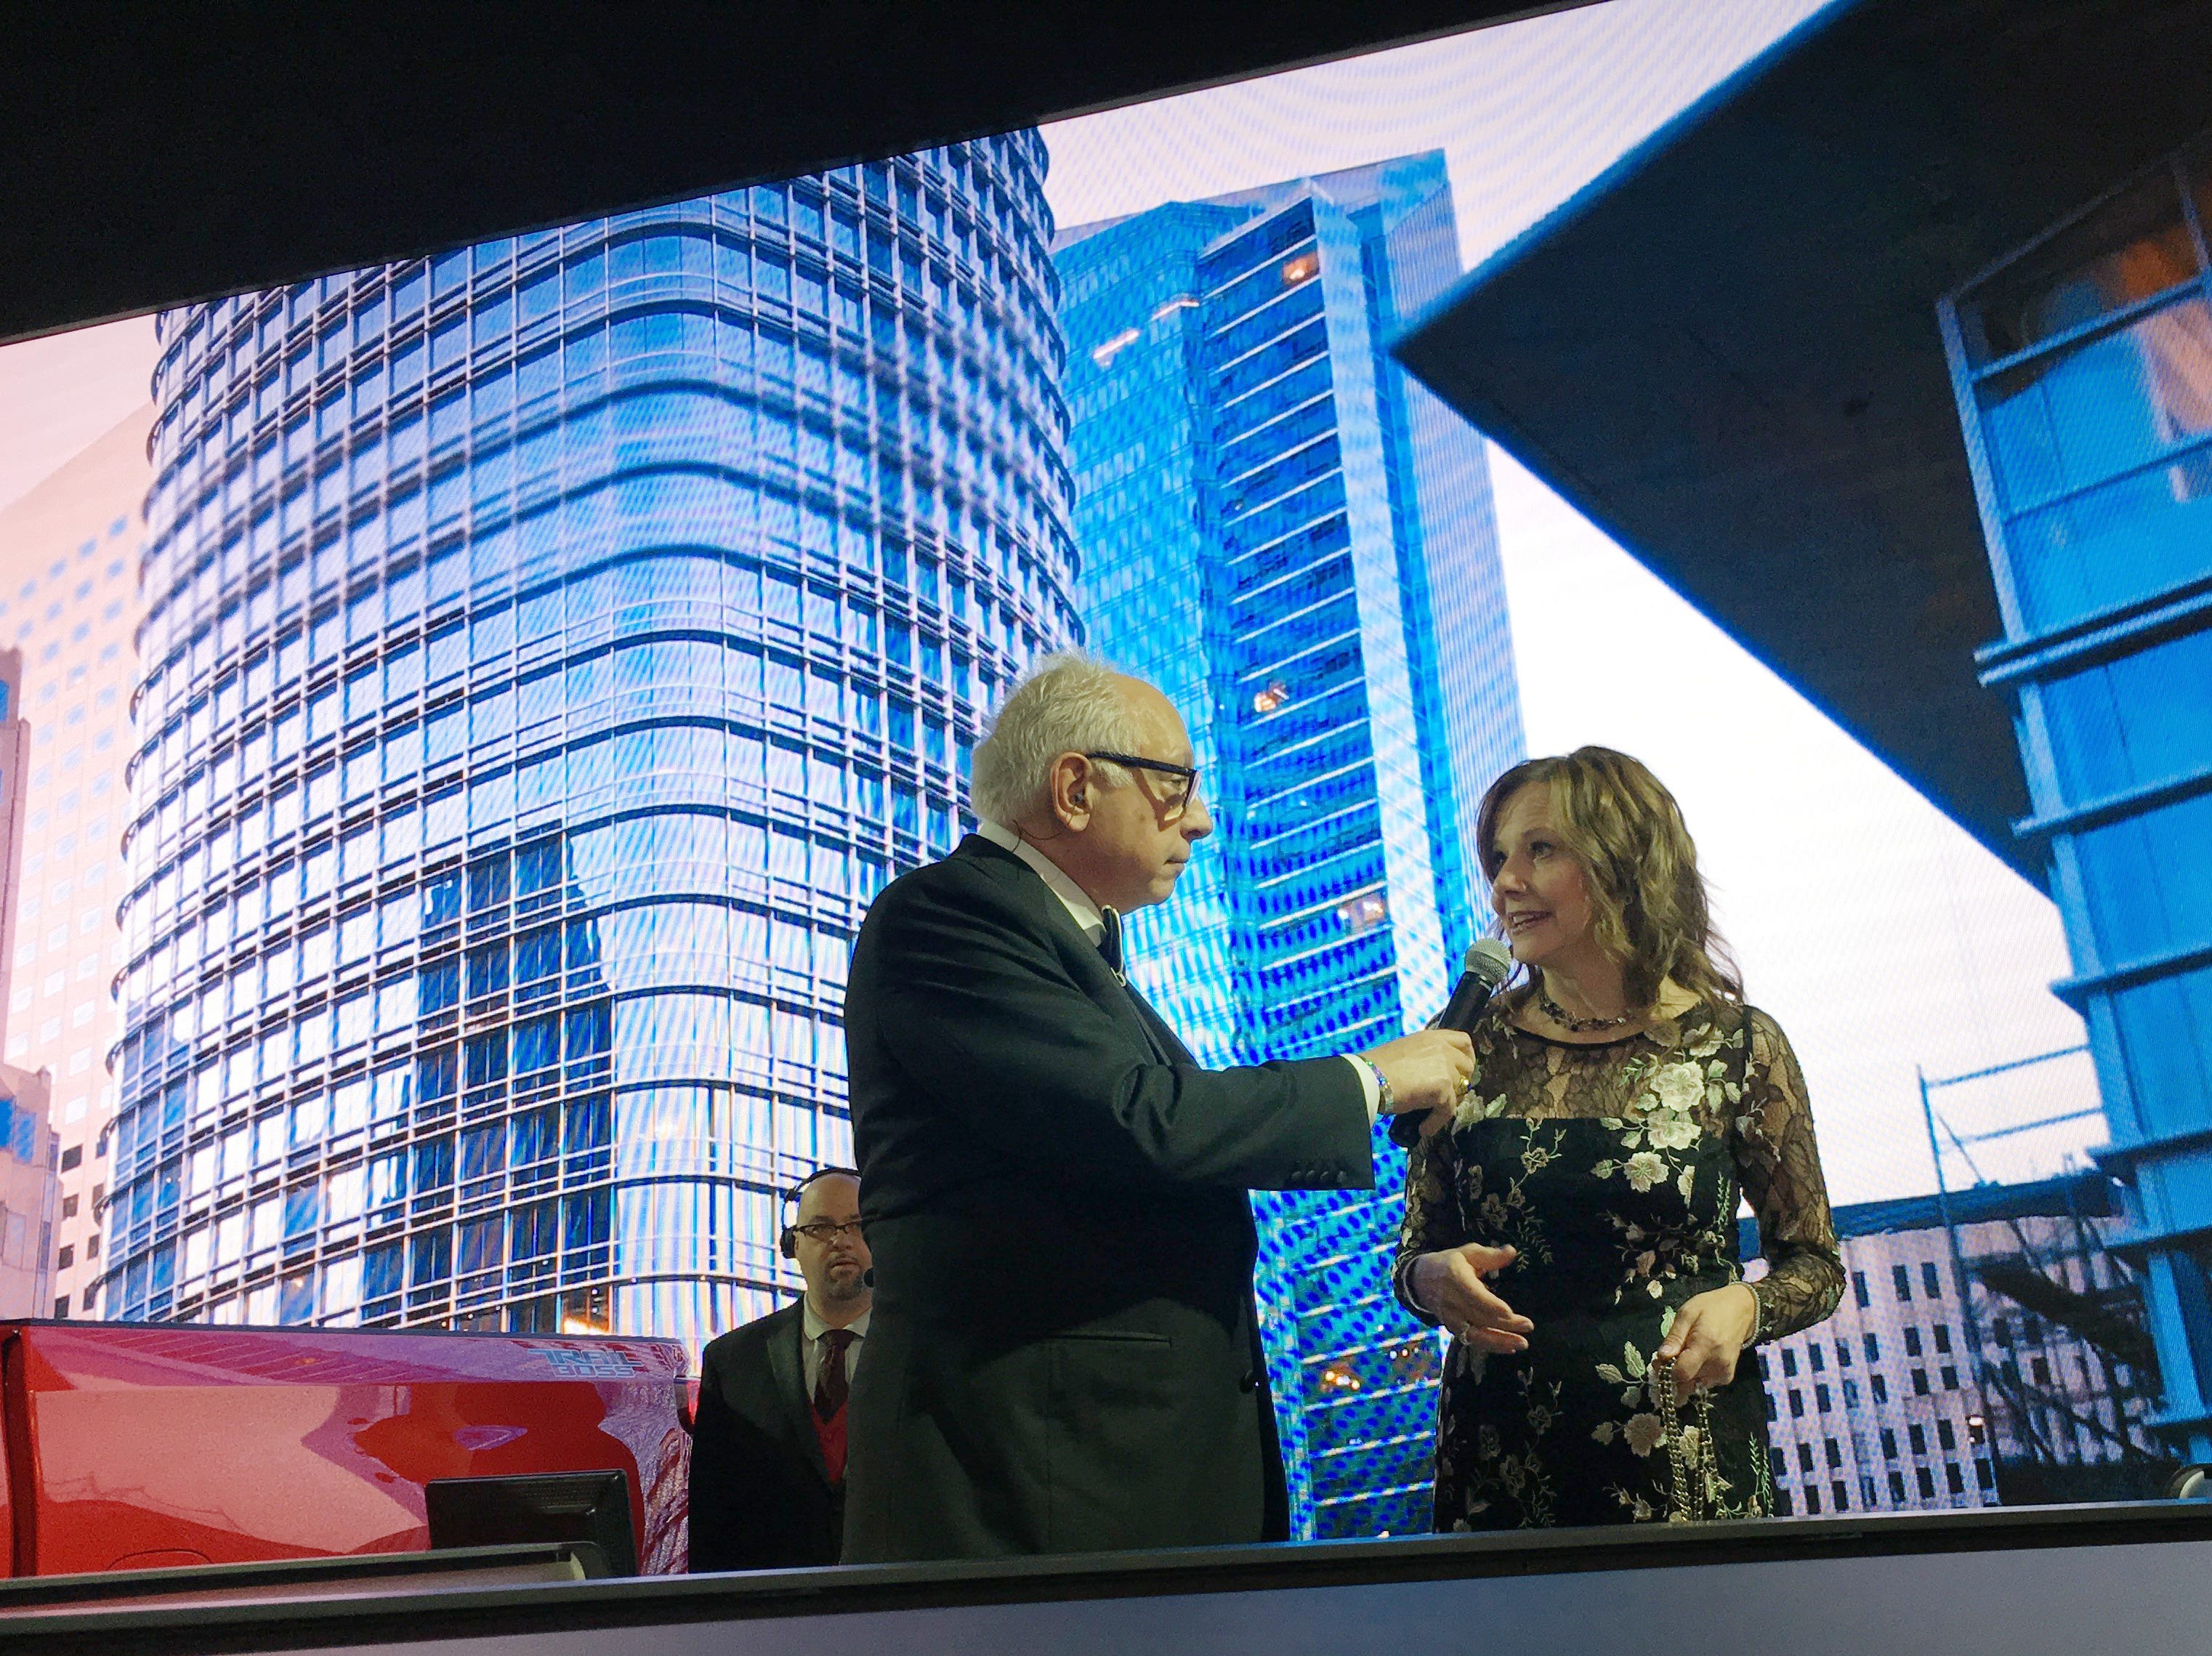 Paul W. Smith interviews General Motors CEO Mary Barra for WJR Radio during the Detroit auto show Charity Preview gala at Cobo Center in Detroit on Friday evening, January 18, 2019.